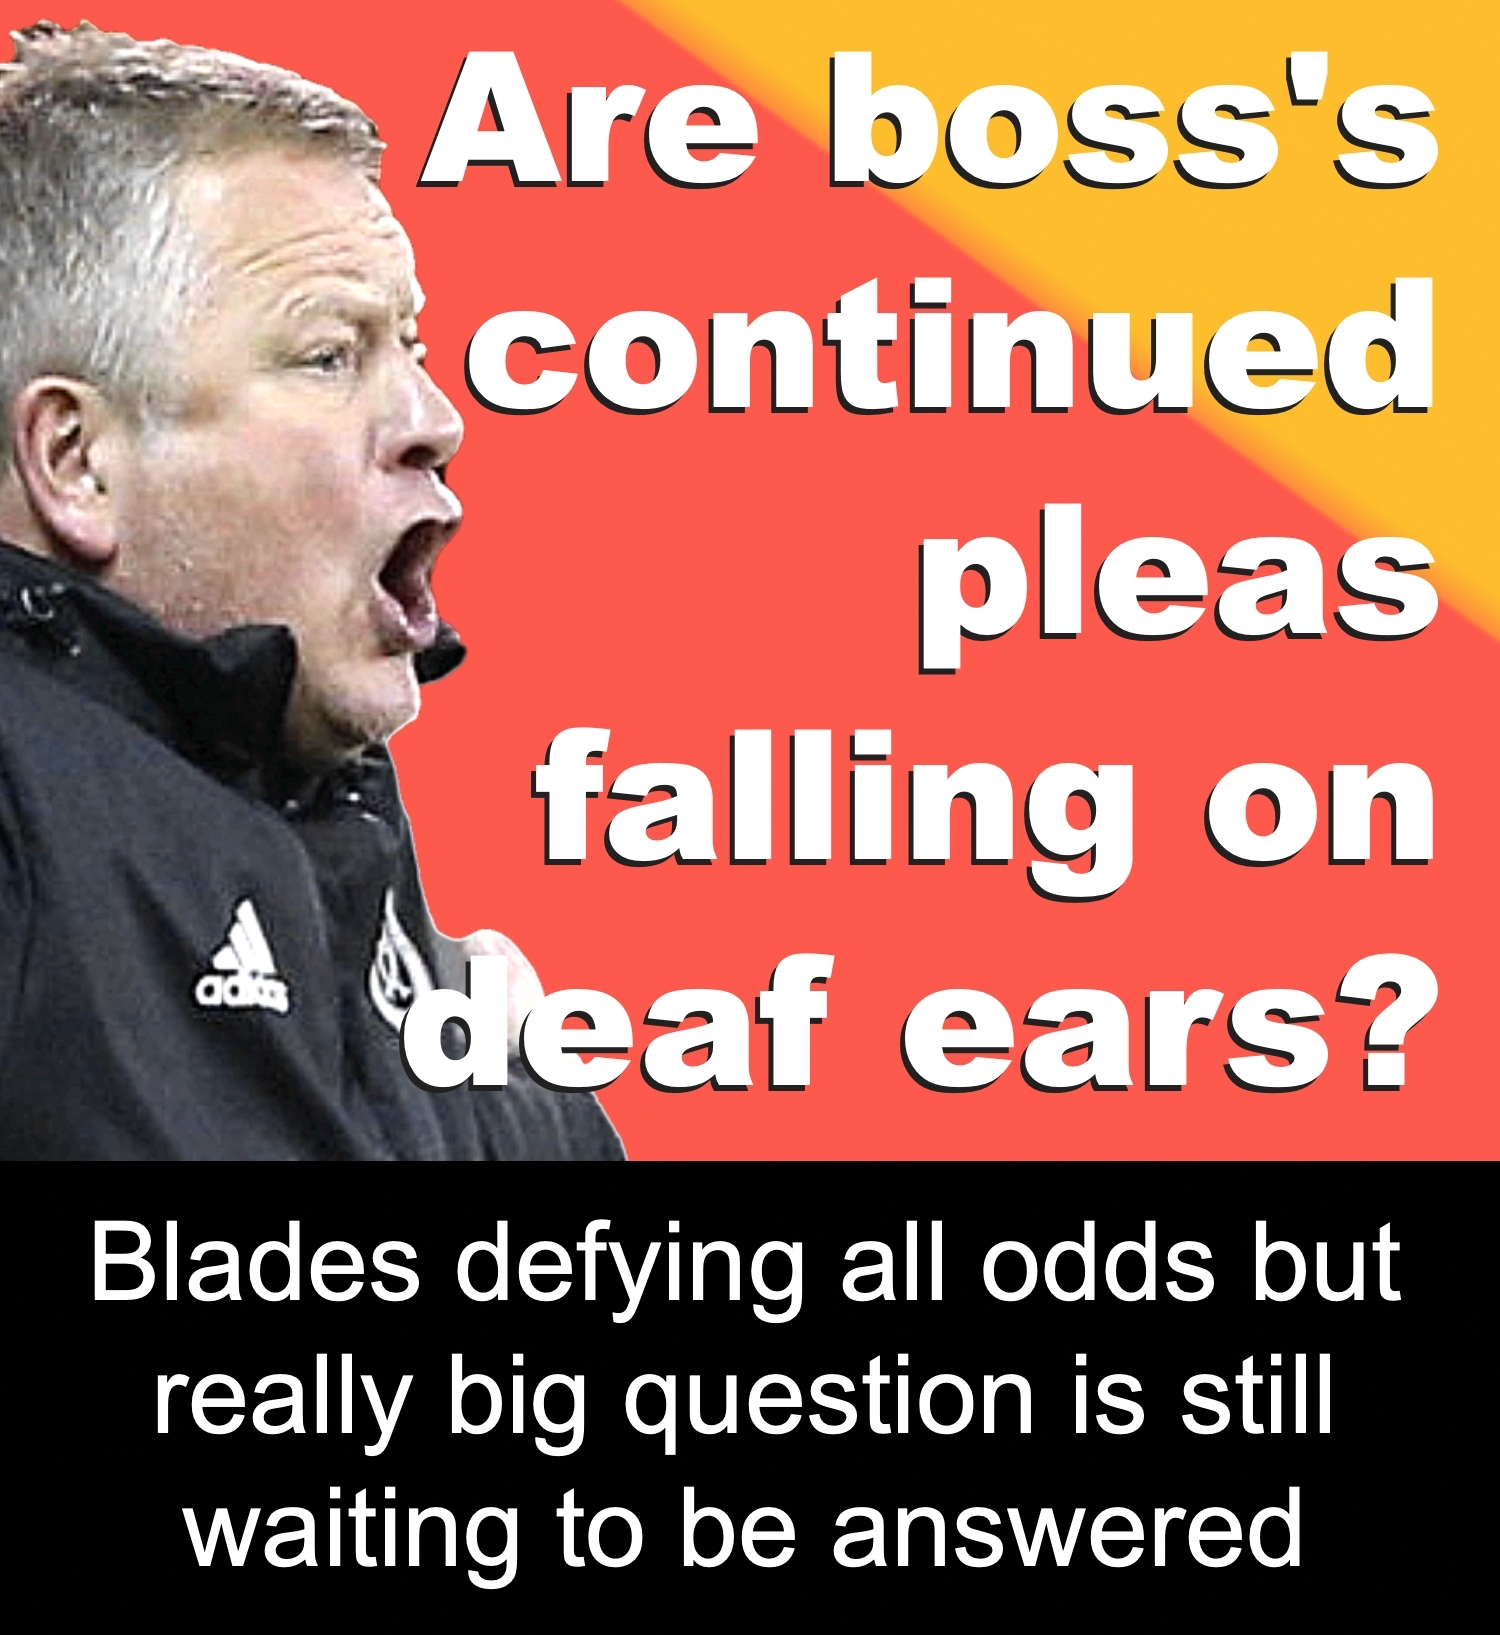 Sheffield United manager Chris Wilder's continued Premier League pleas appear to be falling on deaf ears at Bramall Lane.